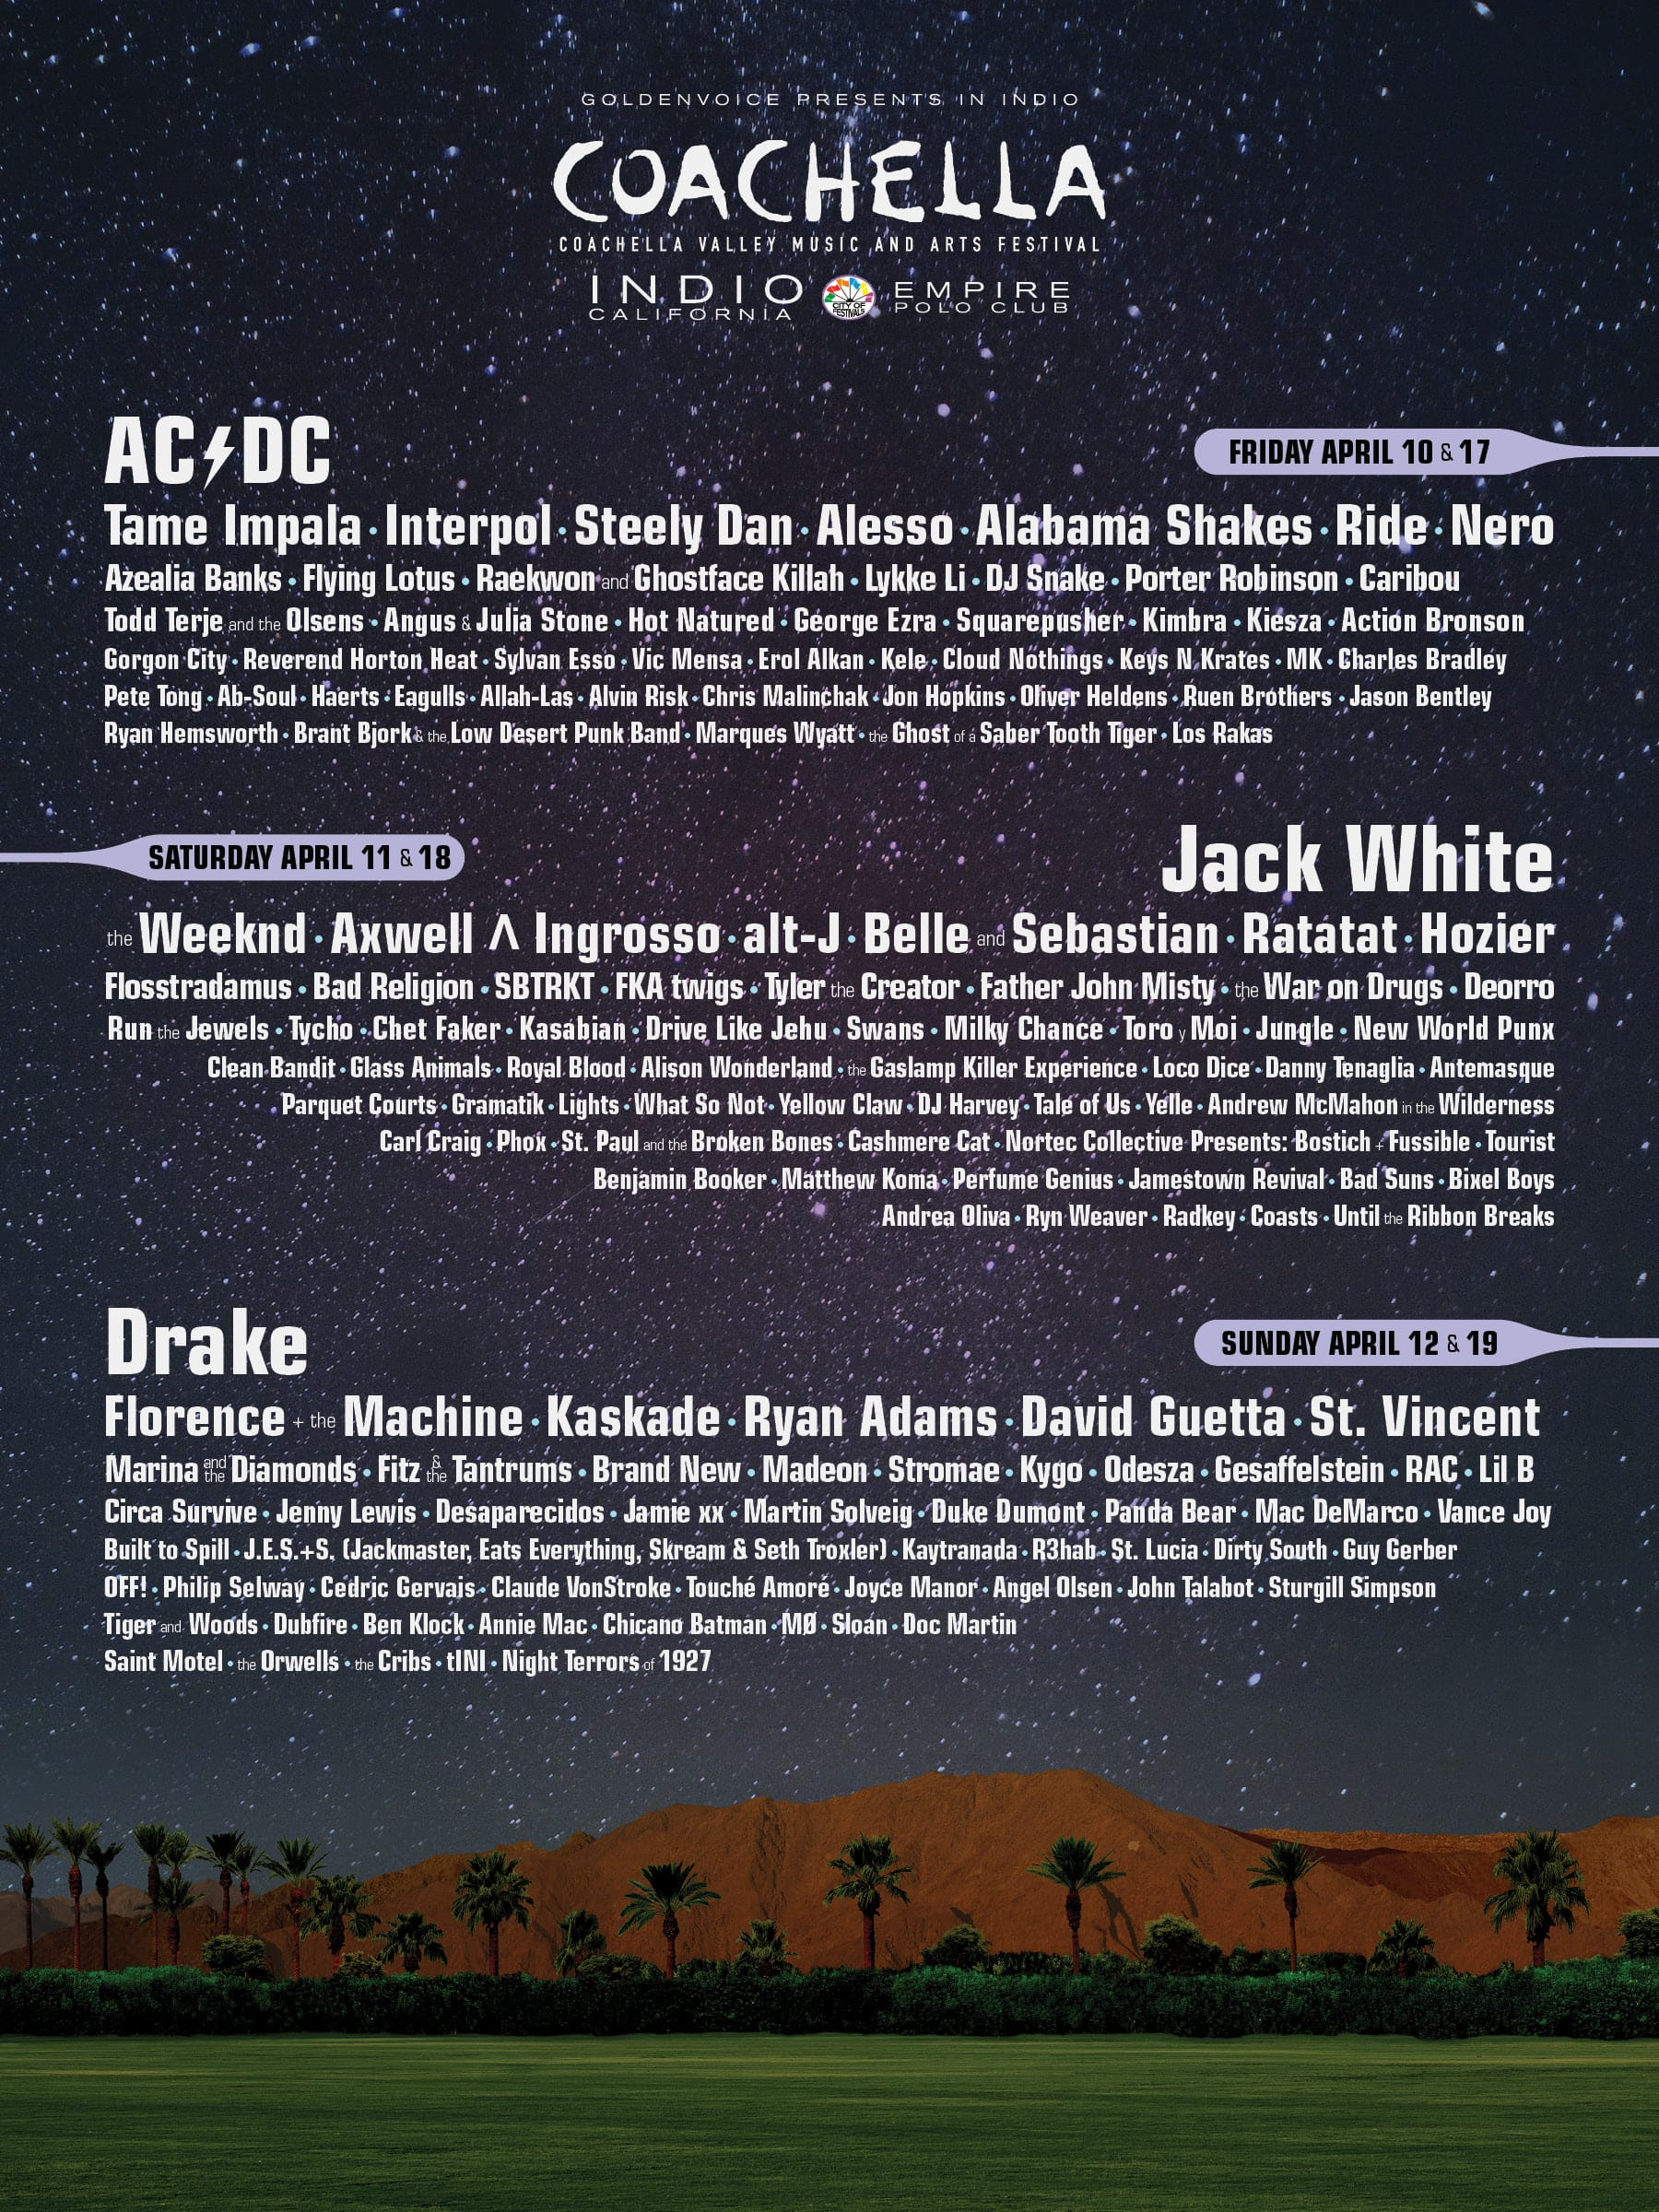 Coachella: a list of every lineup, artist and poster